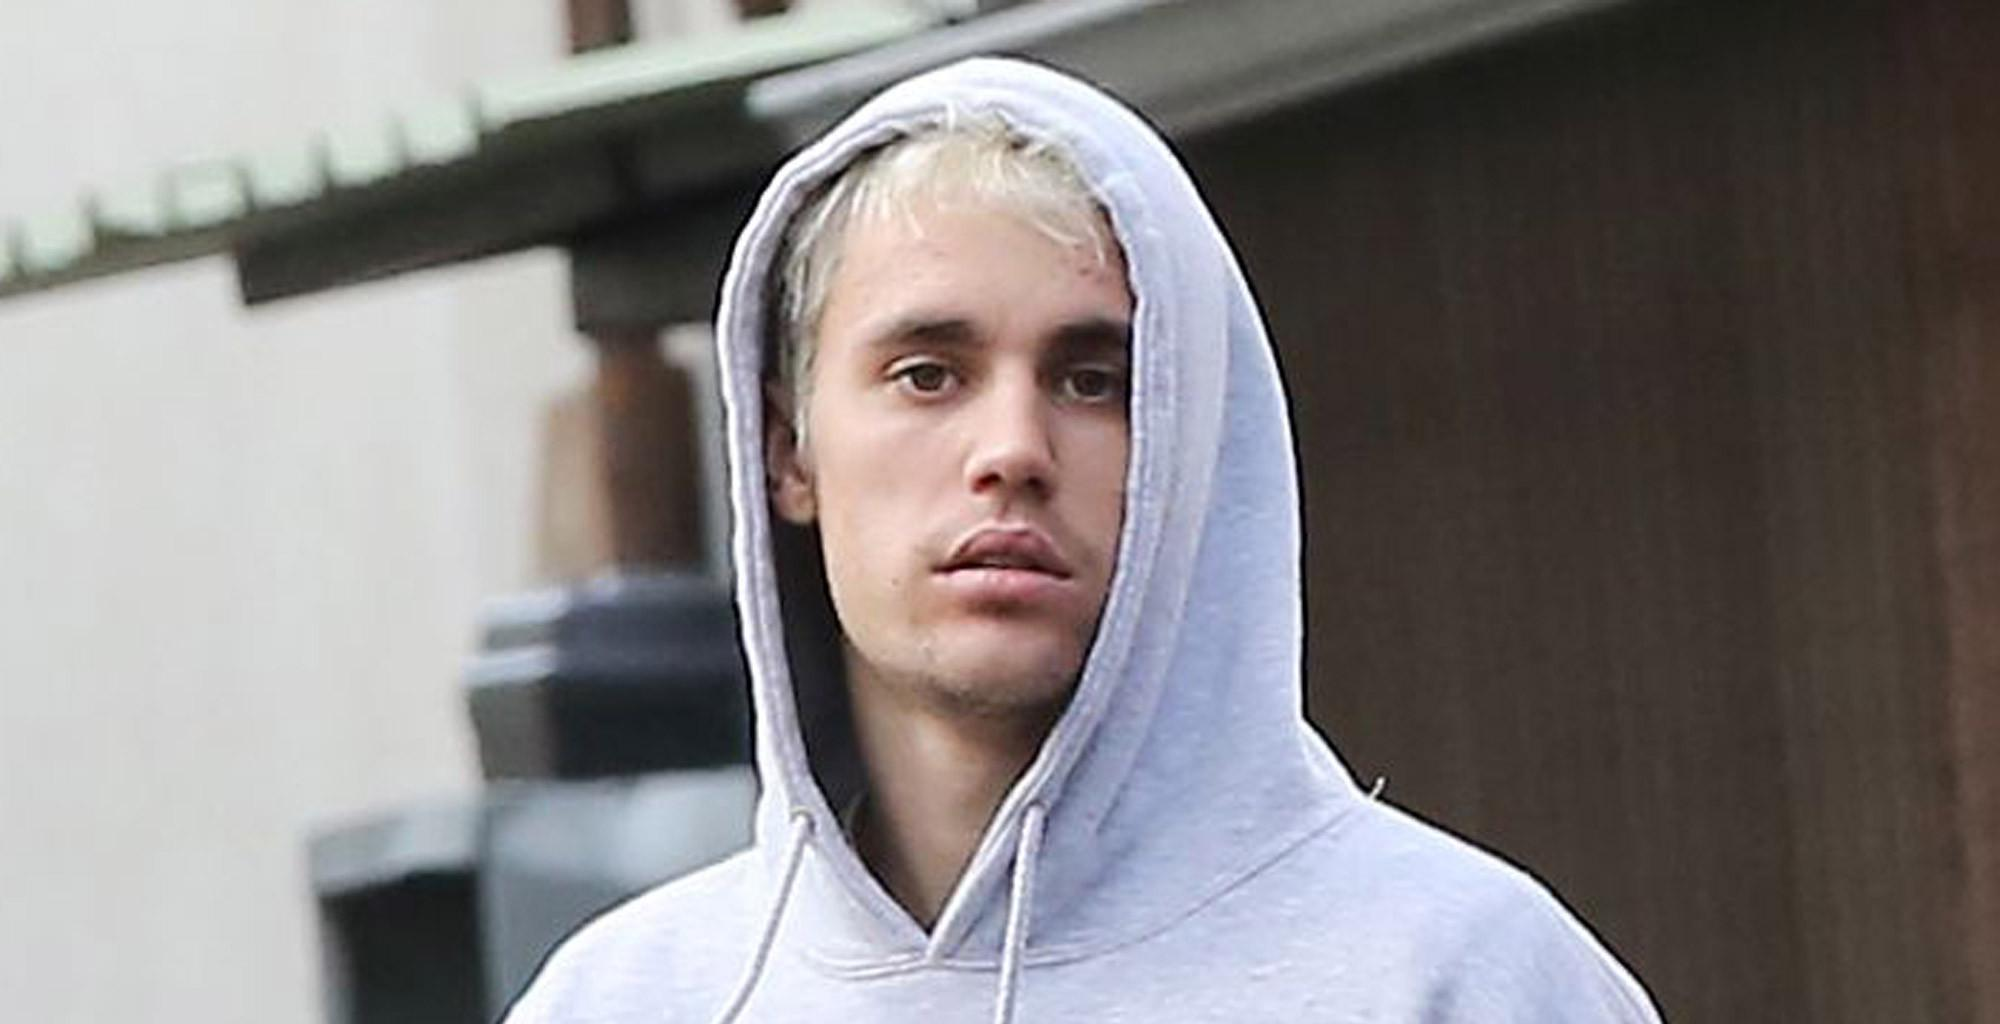 Justin Bieber Debuts New Chest Tattoo And It's Huge - Check It Out!